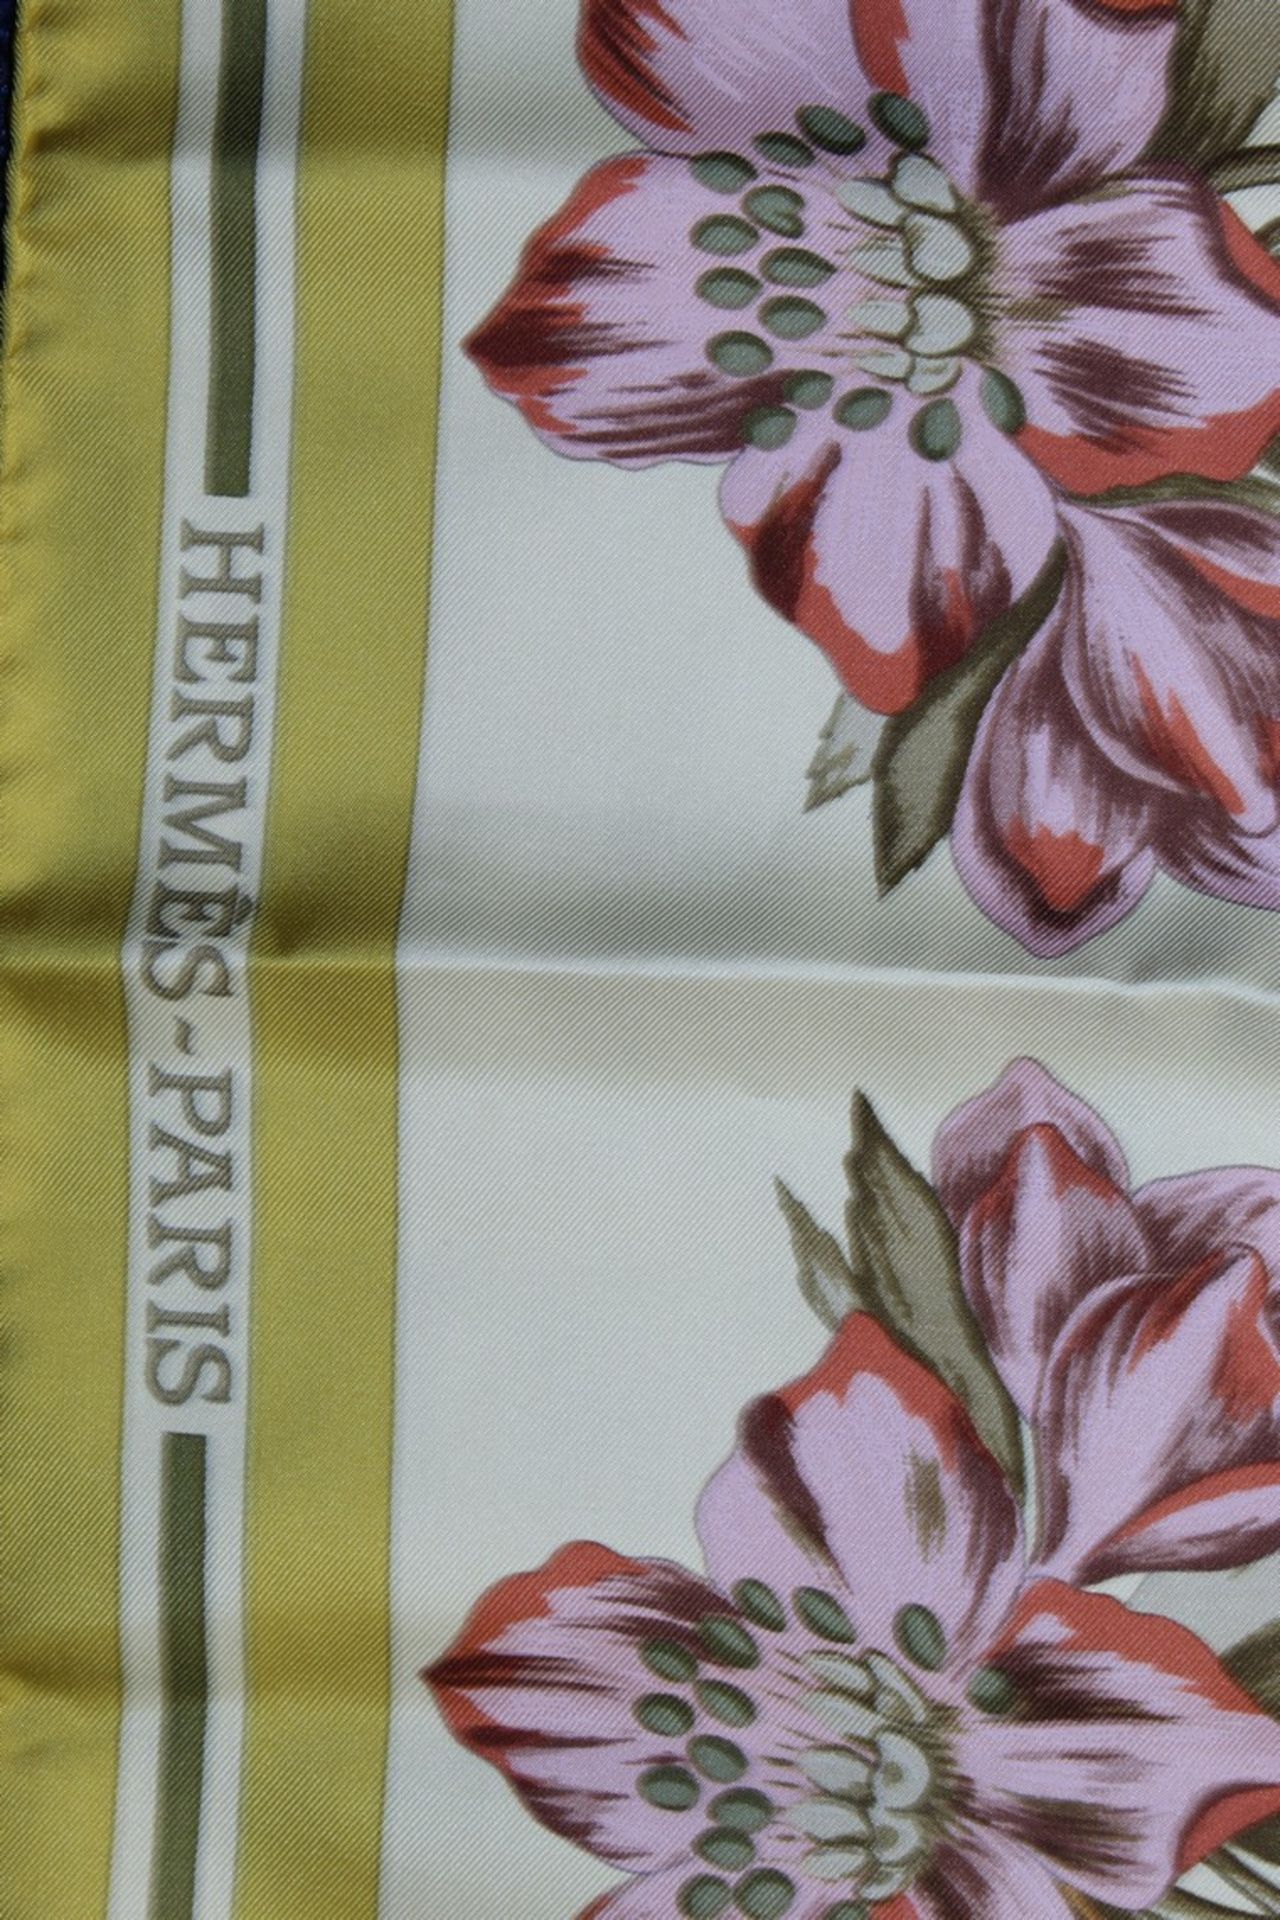 RRP £680 Hermes 100% Twill Silk Scarf, Aquilegia Othonis By Niki Goulandris, Yellow/Green, 90X90Cm - Image 3 of 3